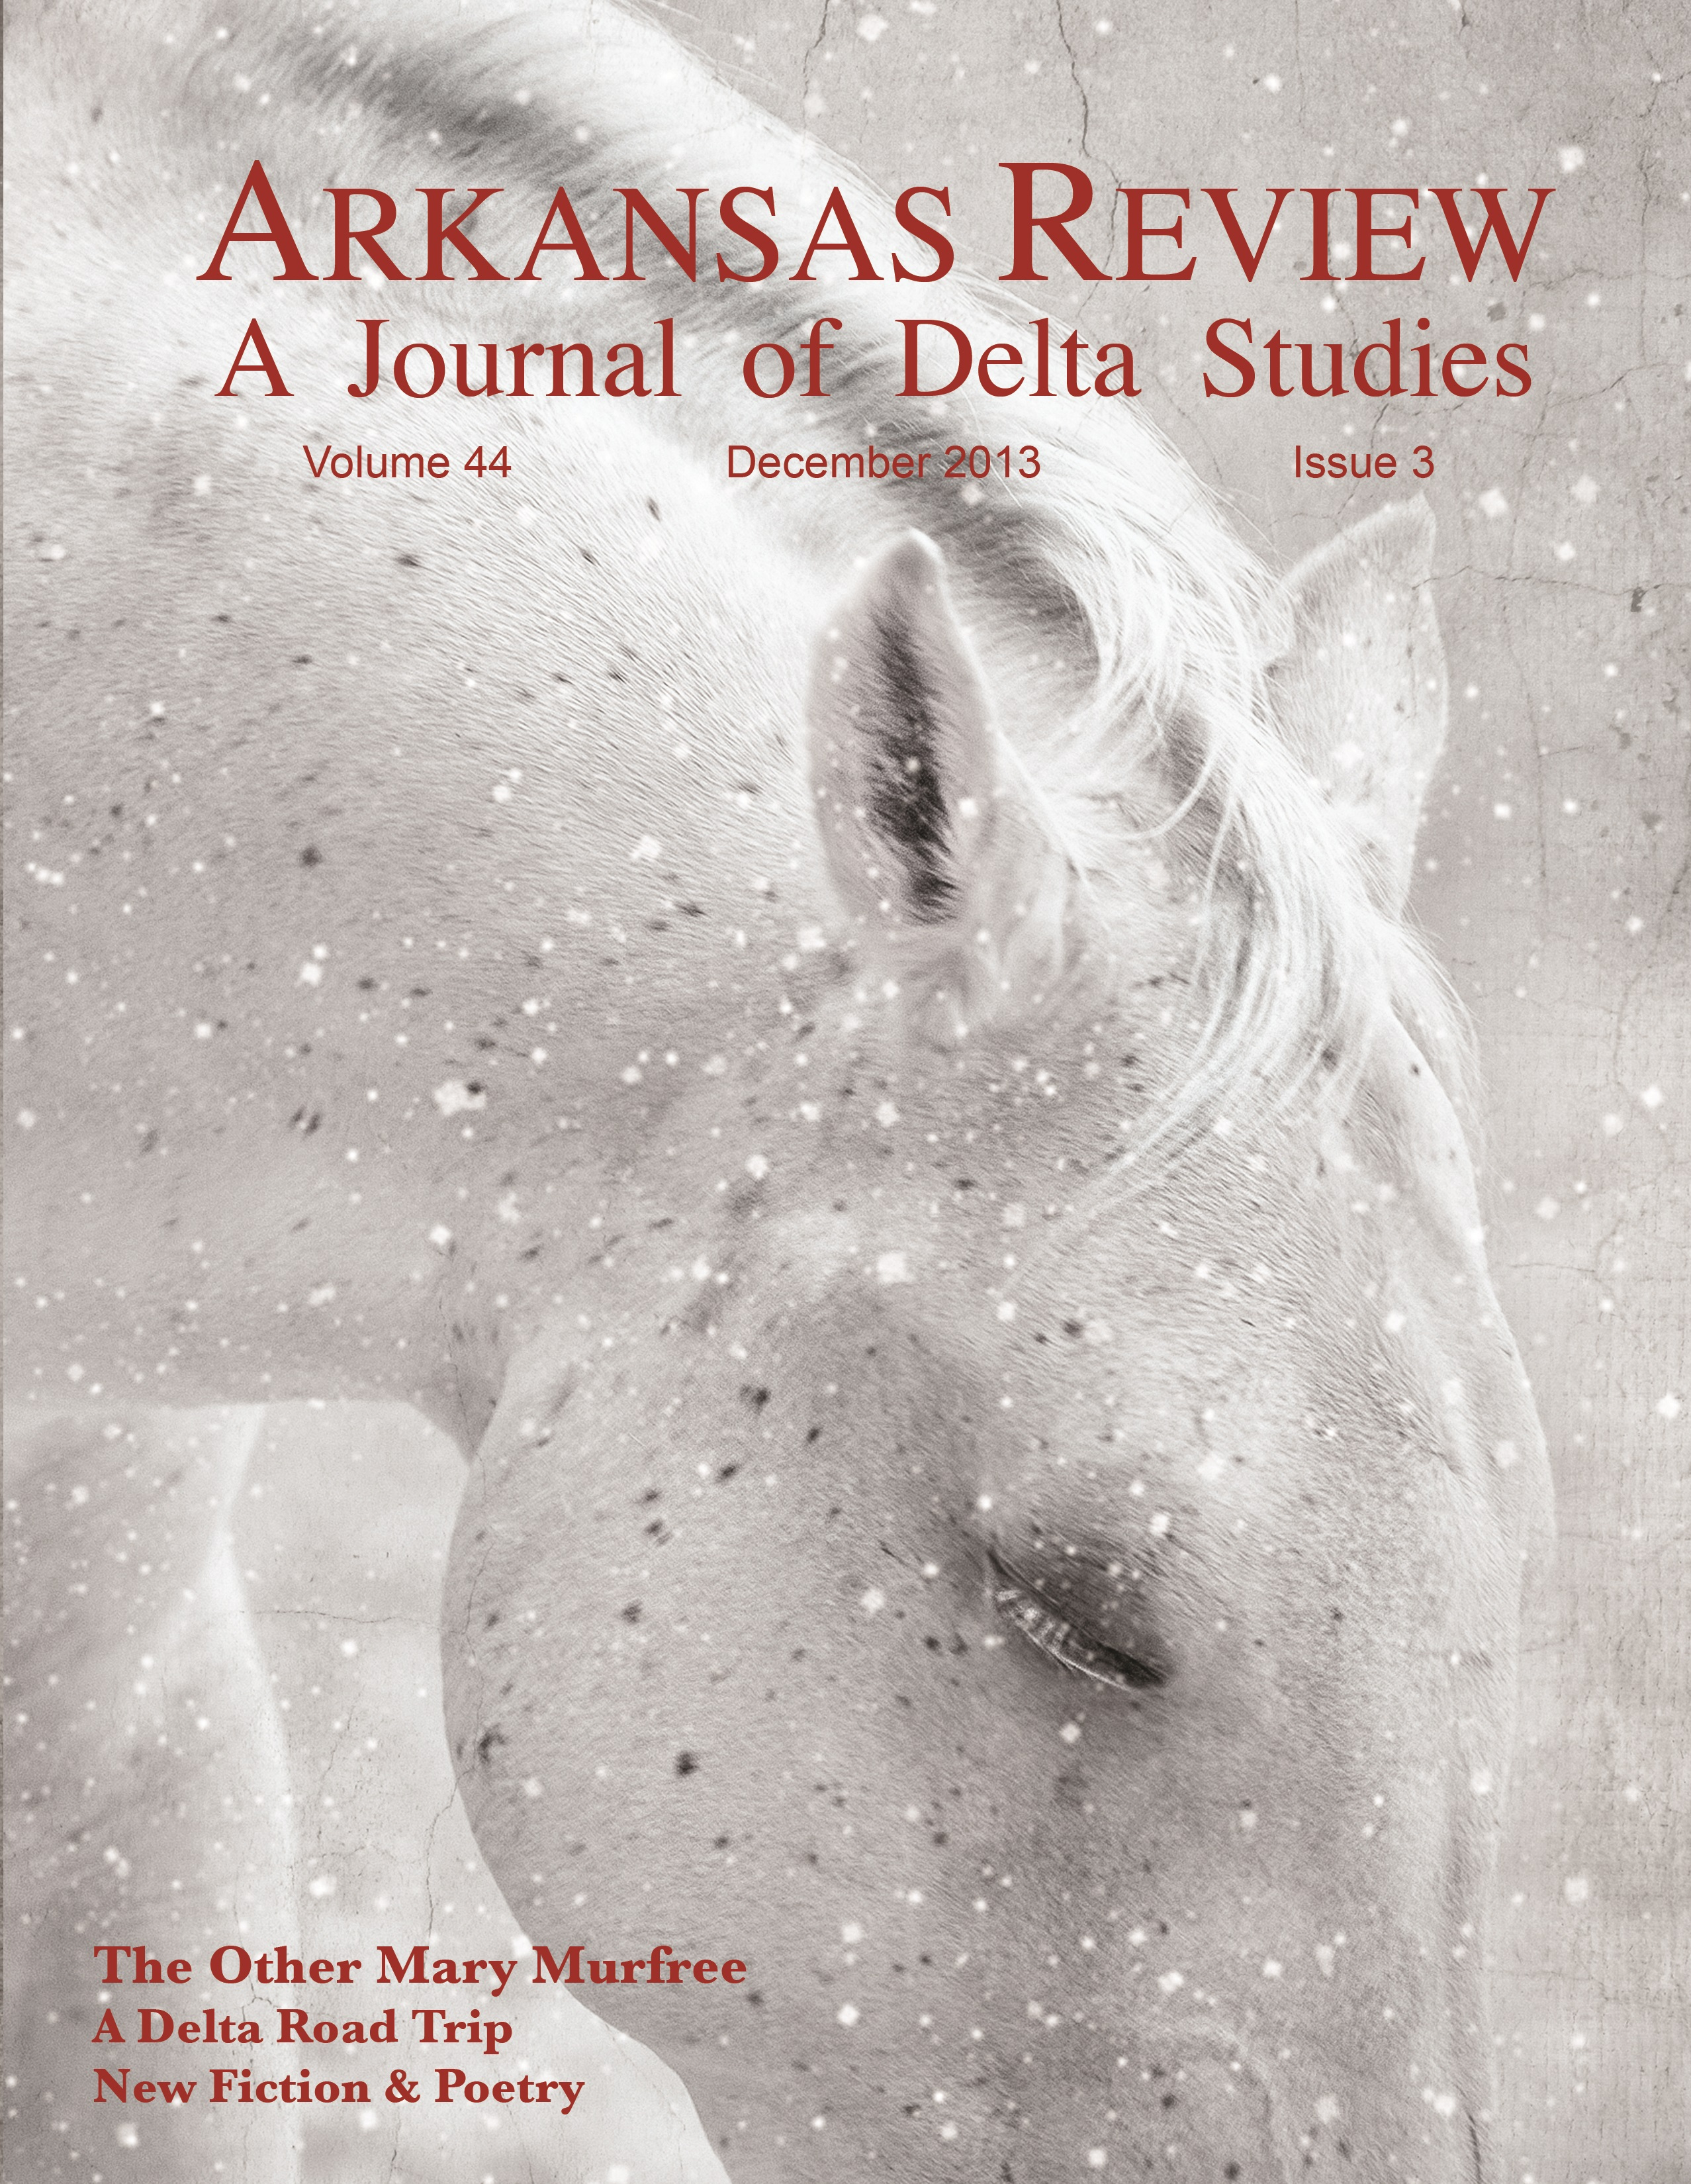 cover image: white horse in snow